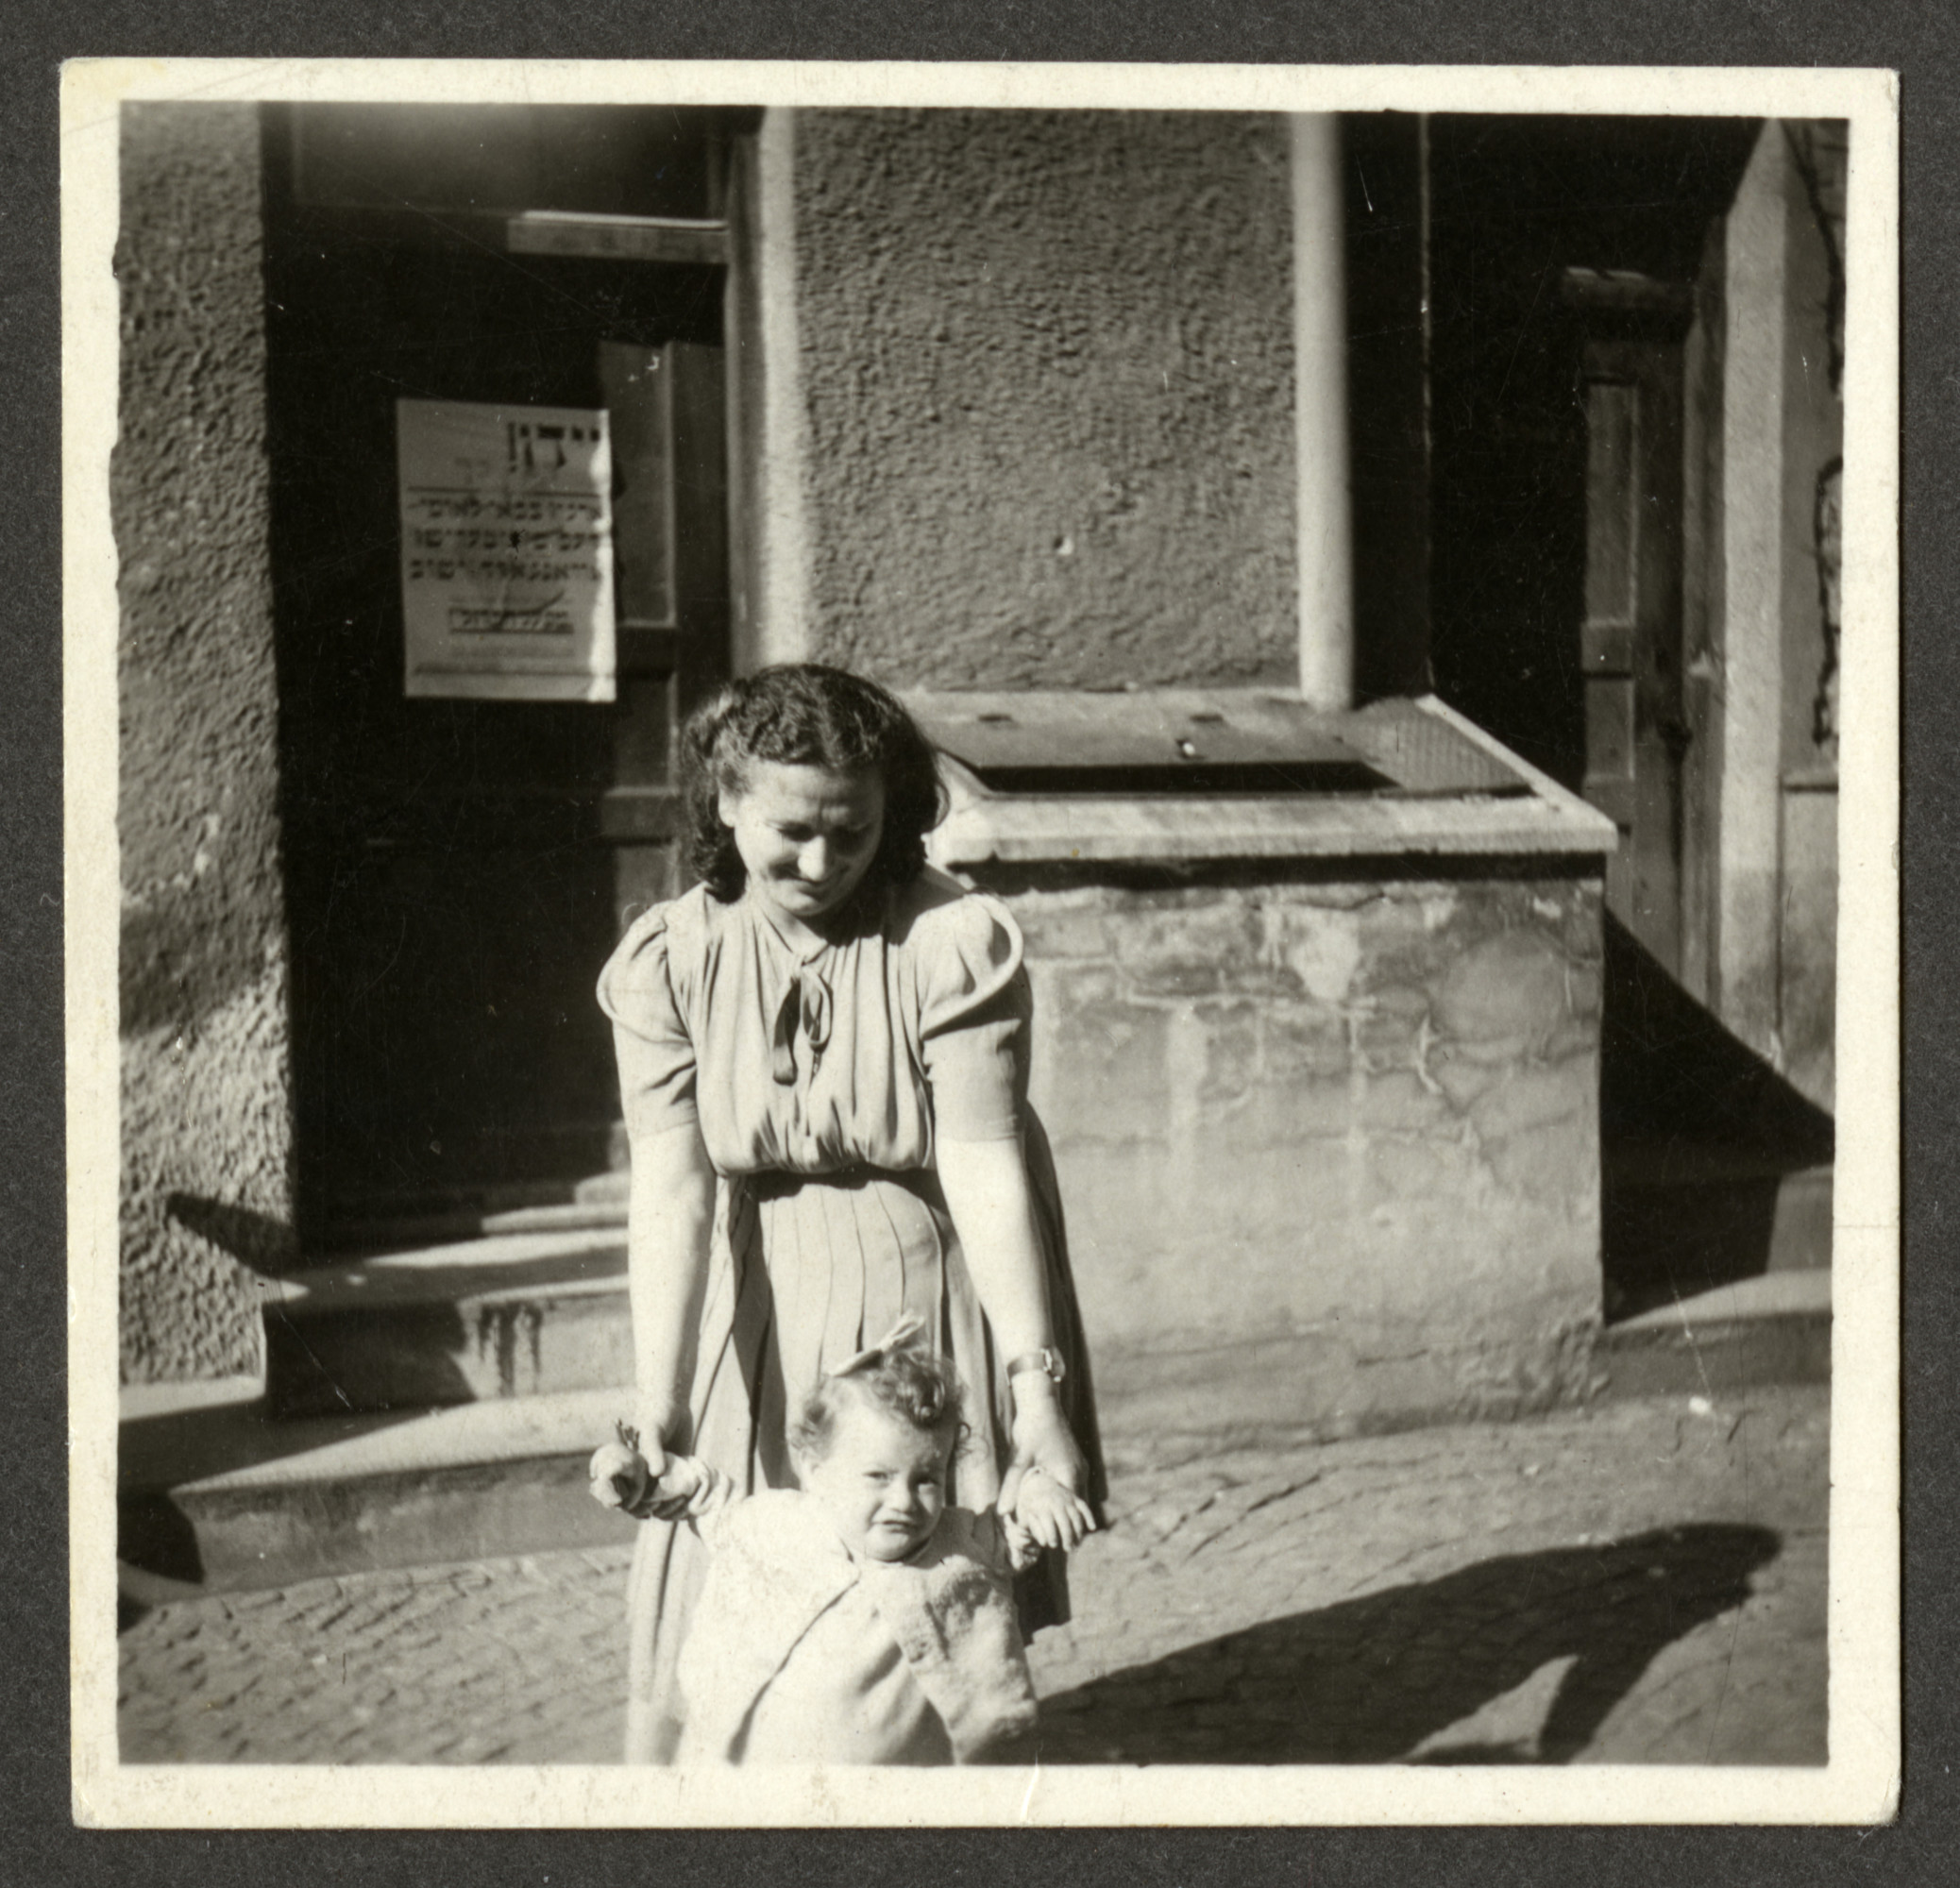 Manya Kirstein poses with her baby daughter Sara [possibly in the Weilheim displaced persons camp].